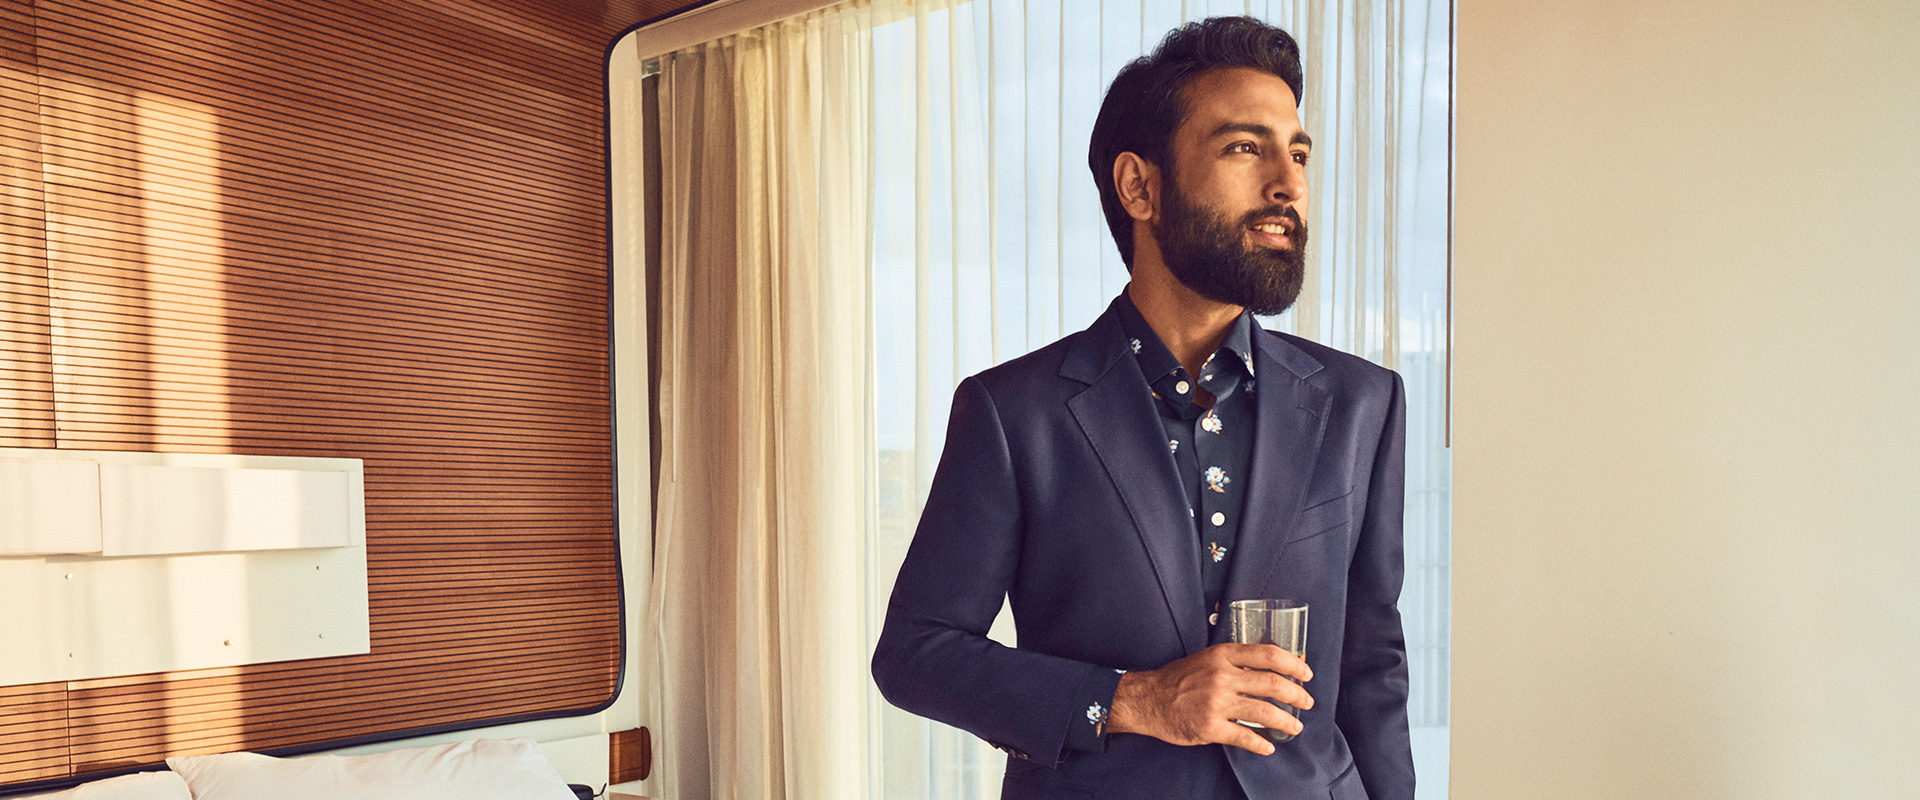 Tirthak standing in a hotel room wearing a Bonobos suit